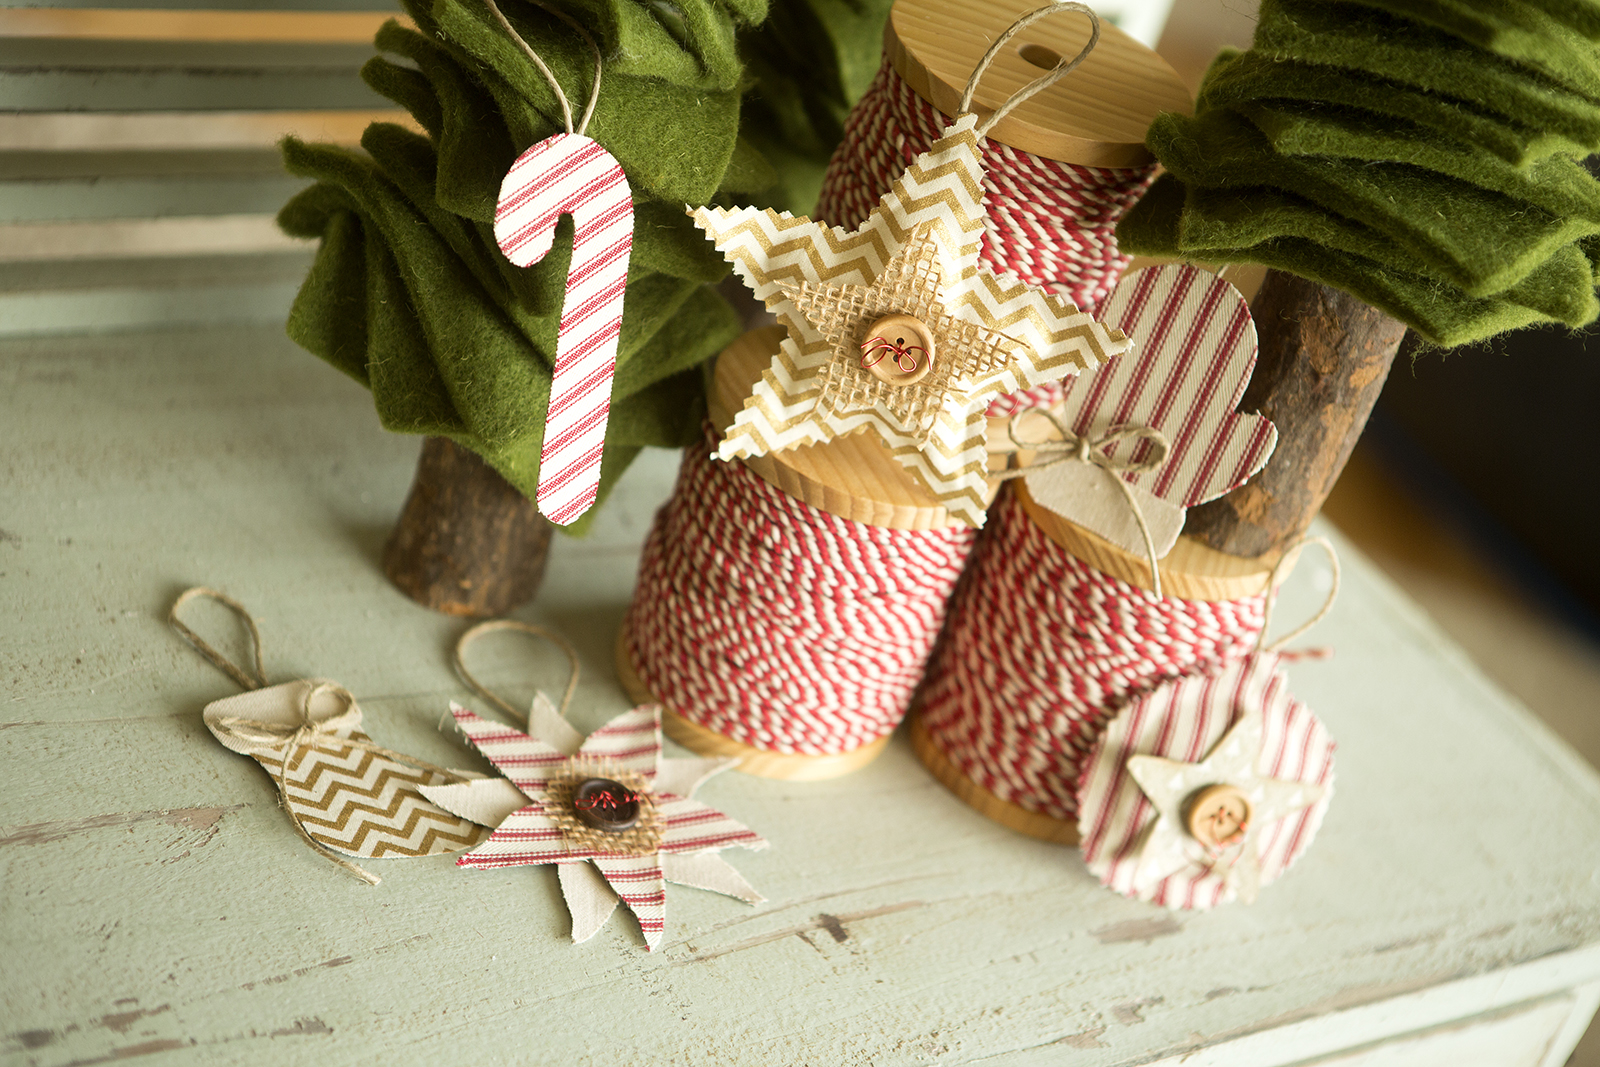 star, candy cane, ornament